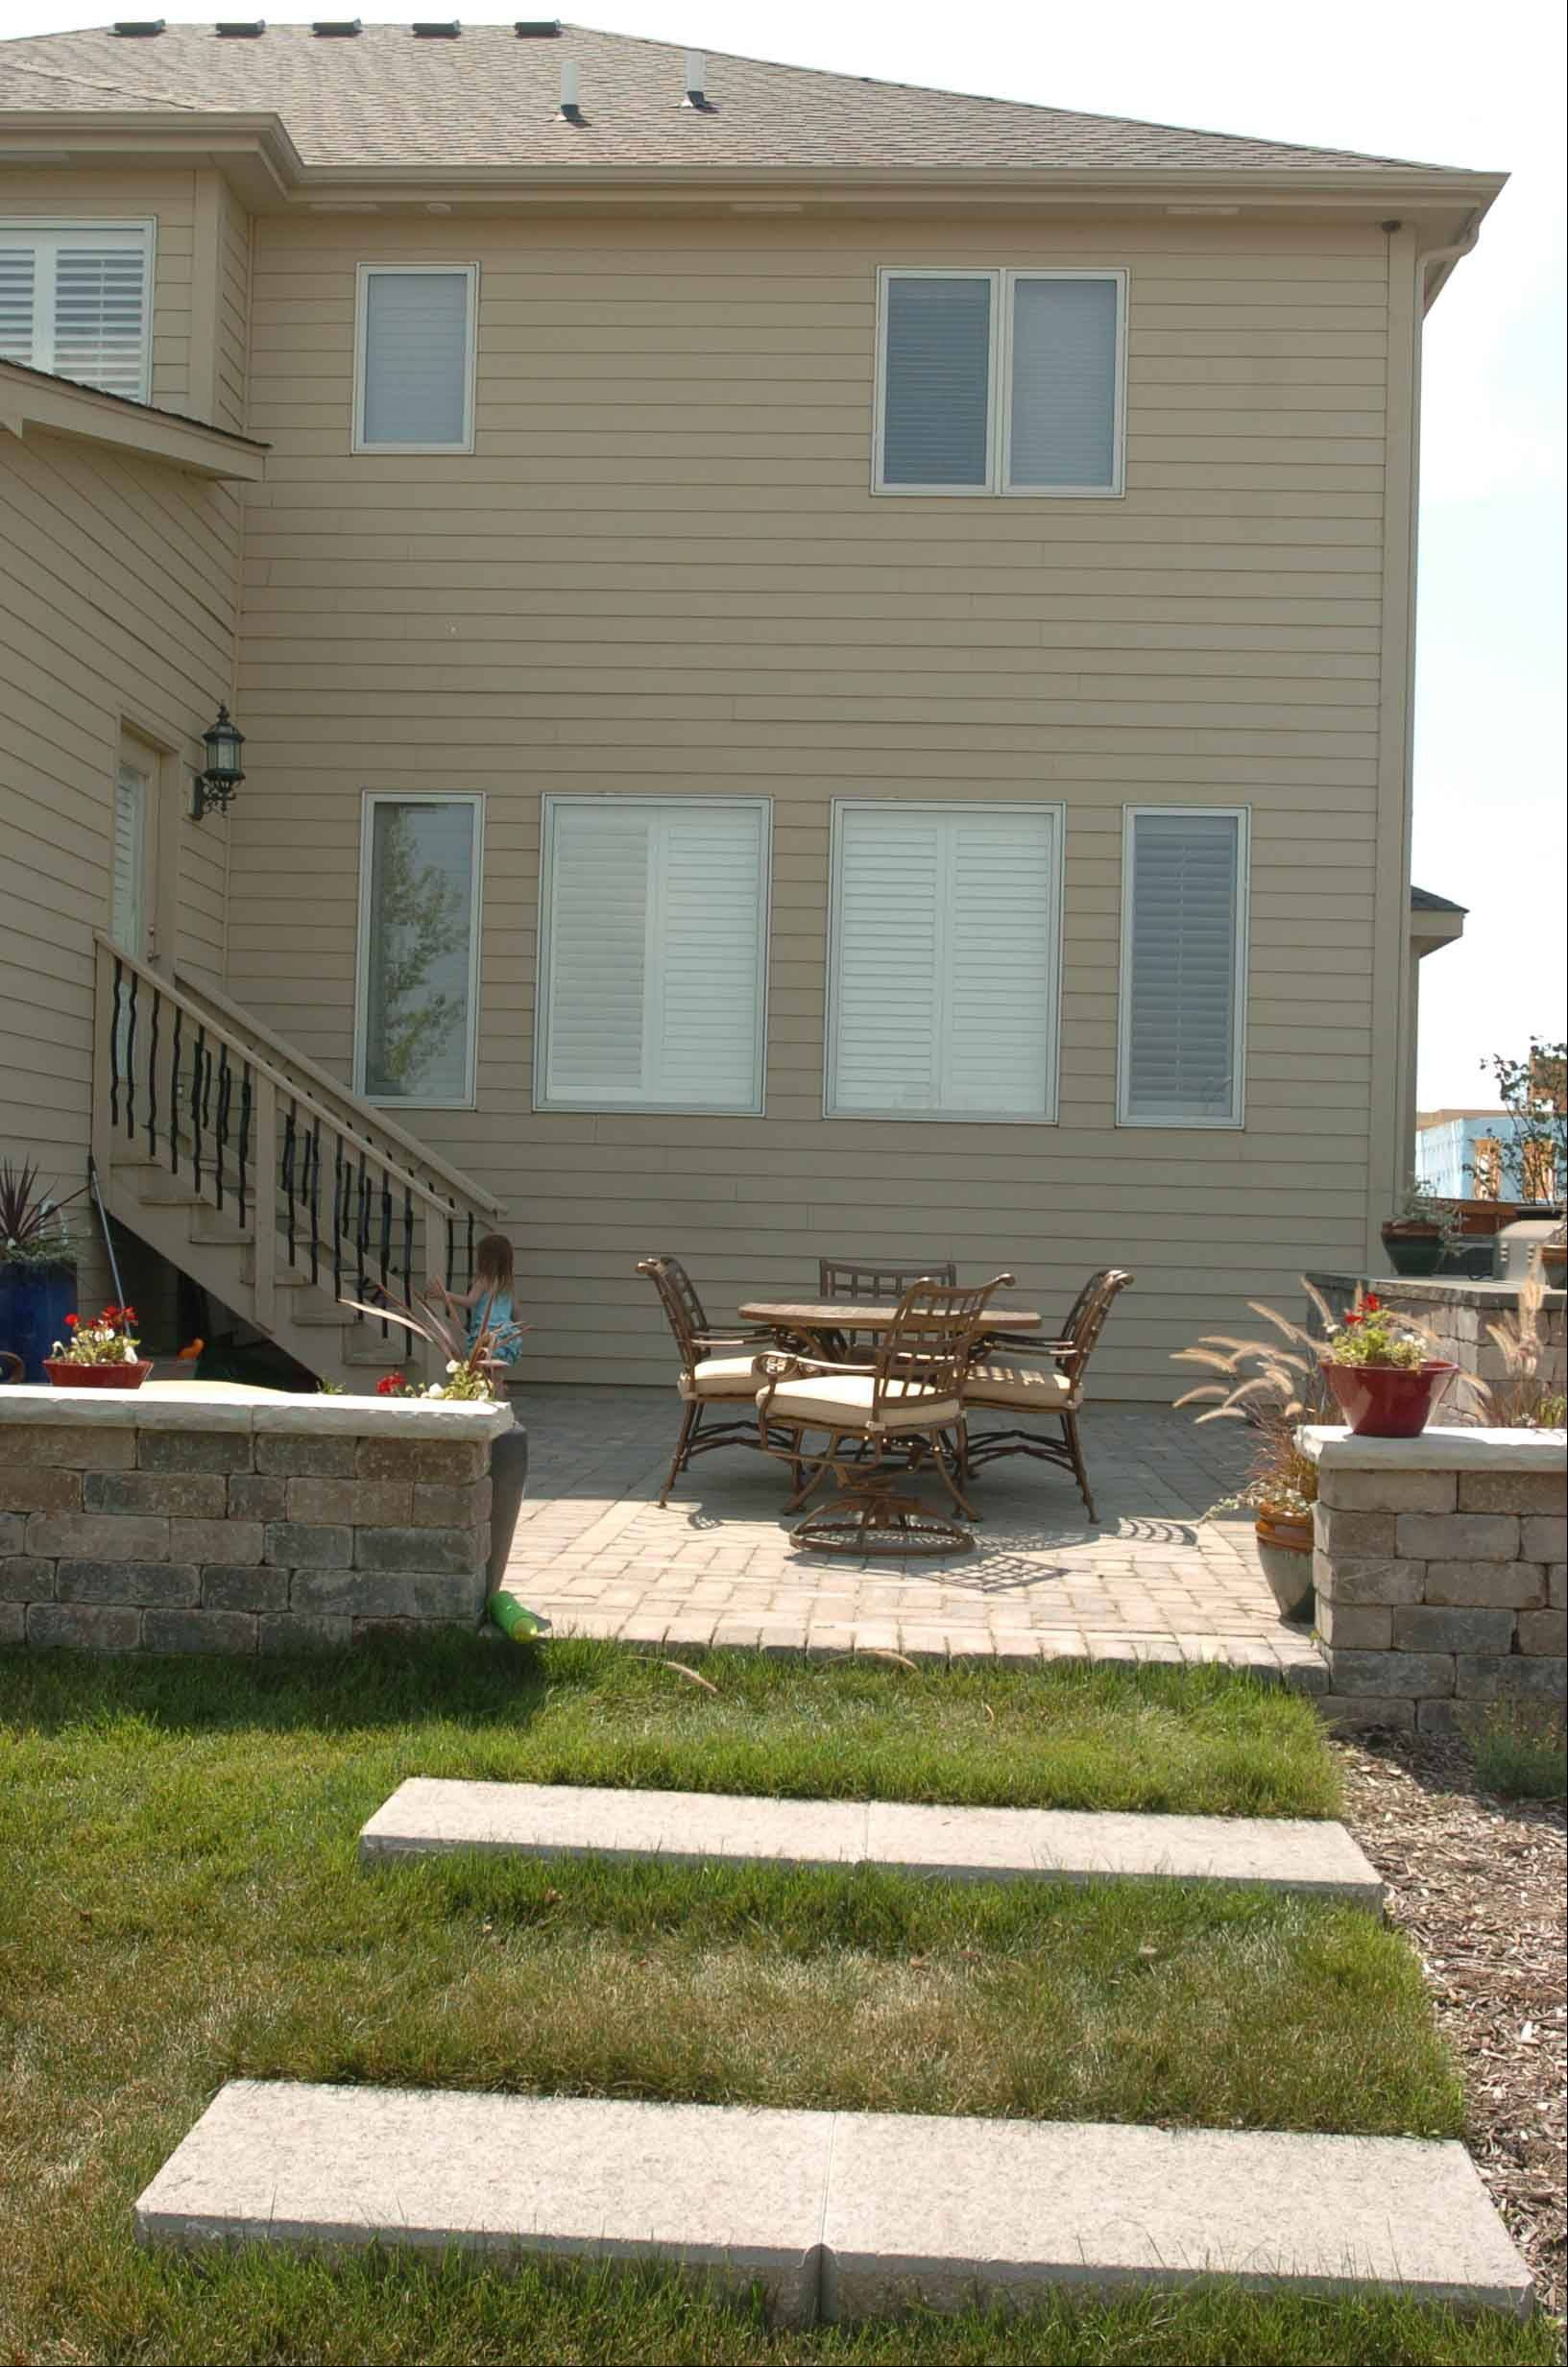 Here is one of the new patios at the Jakovich home in Plainfield.